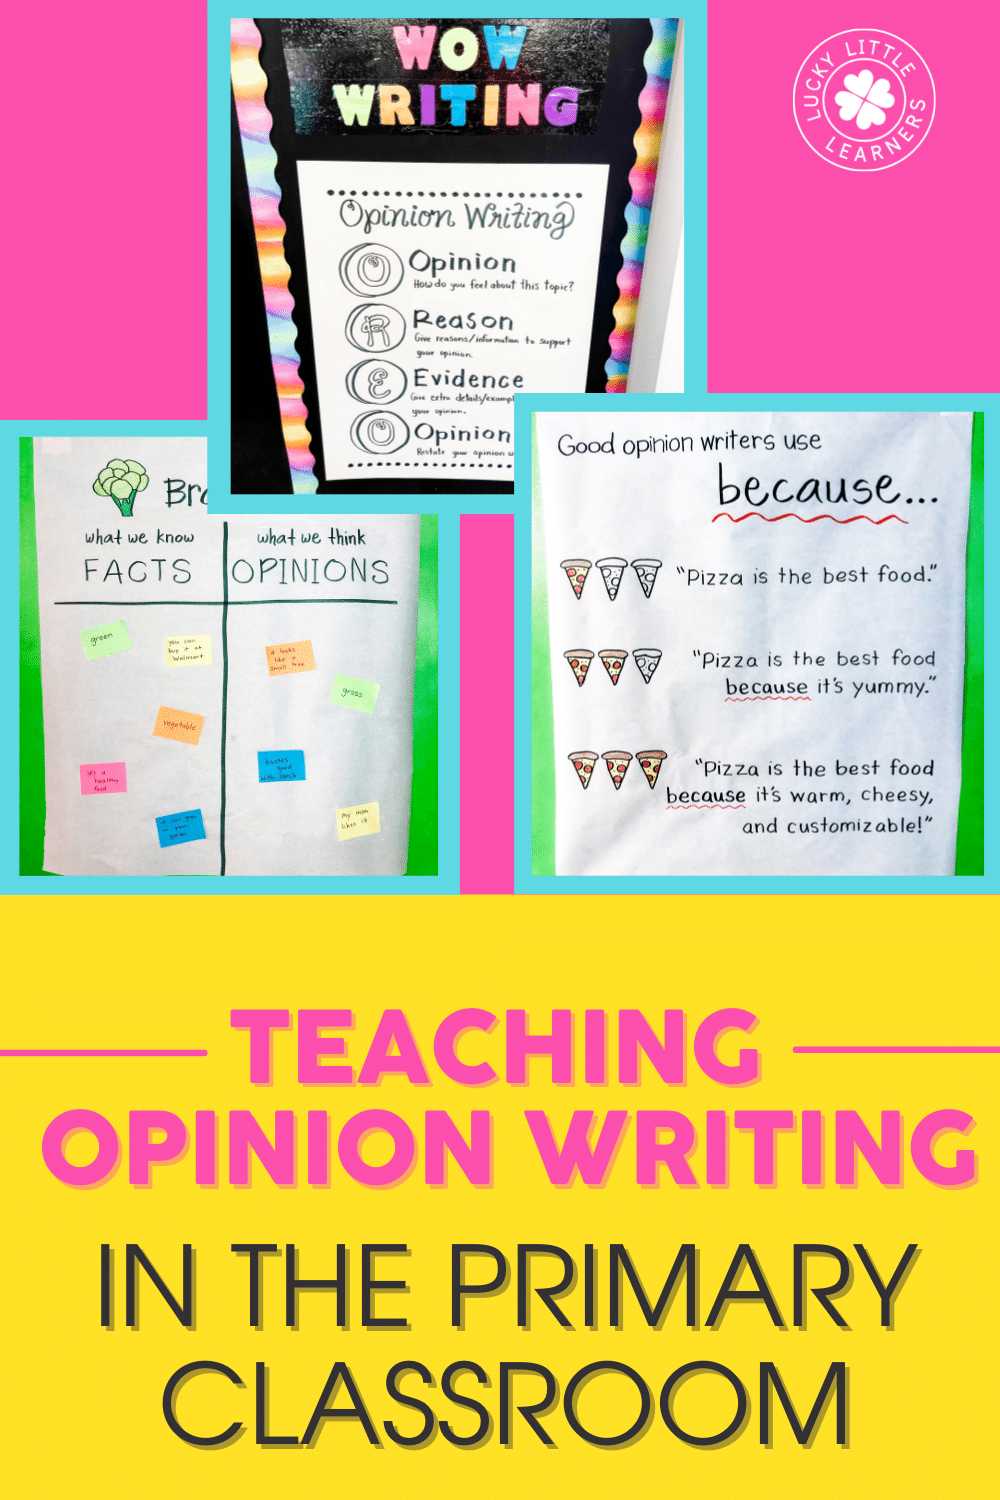 ideas for teaching opinion writing in the primary classroom